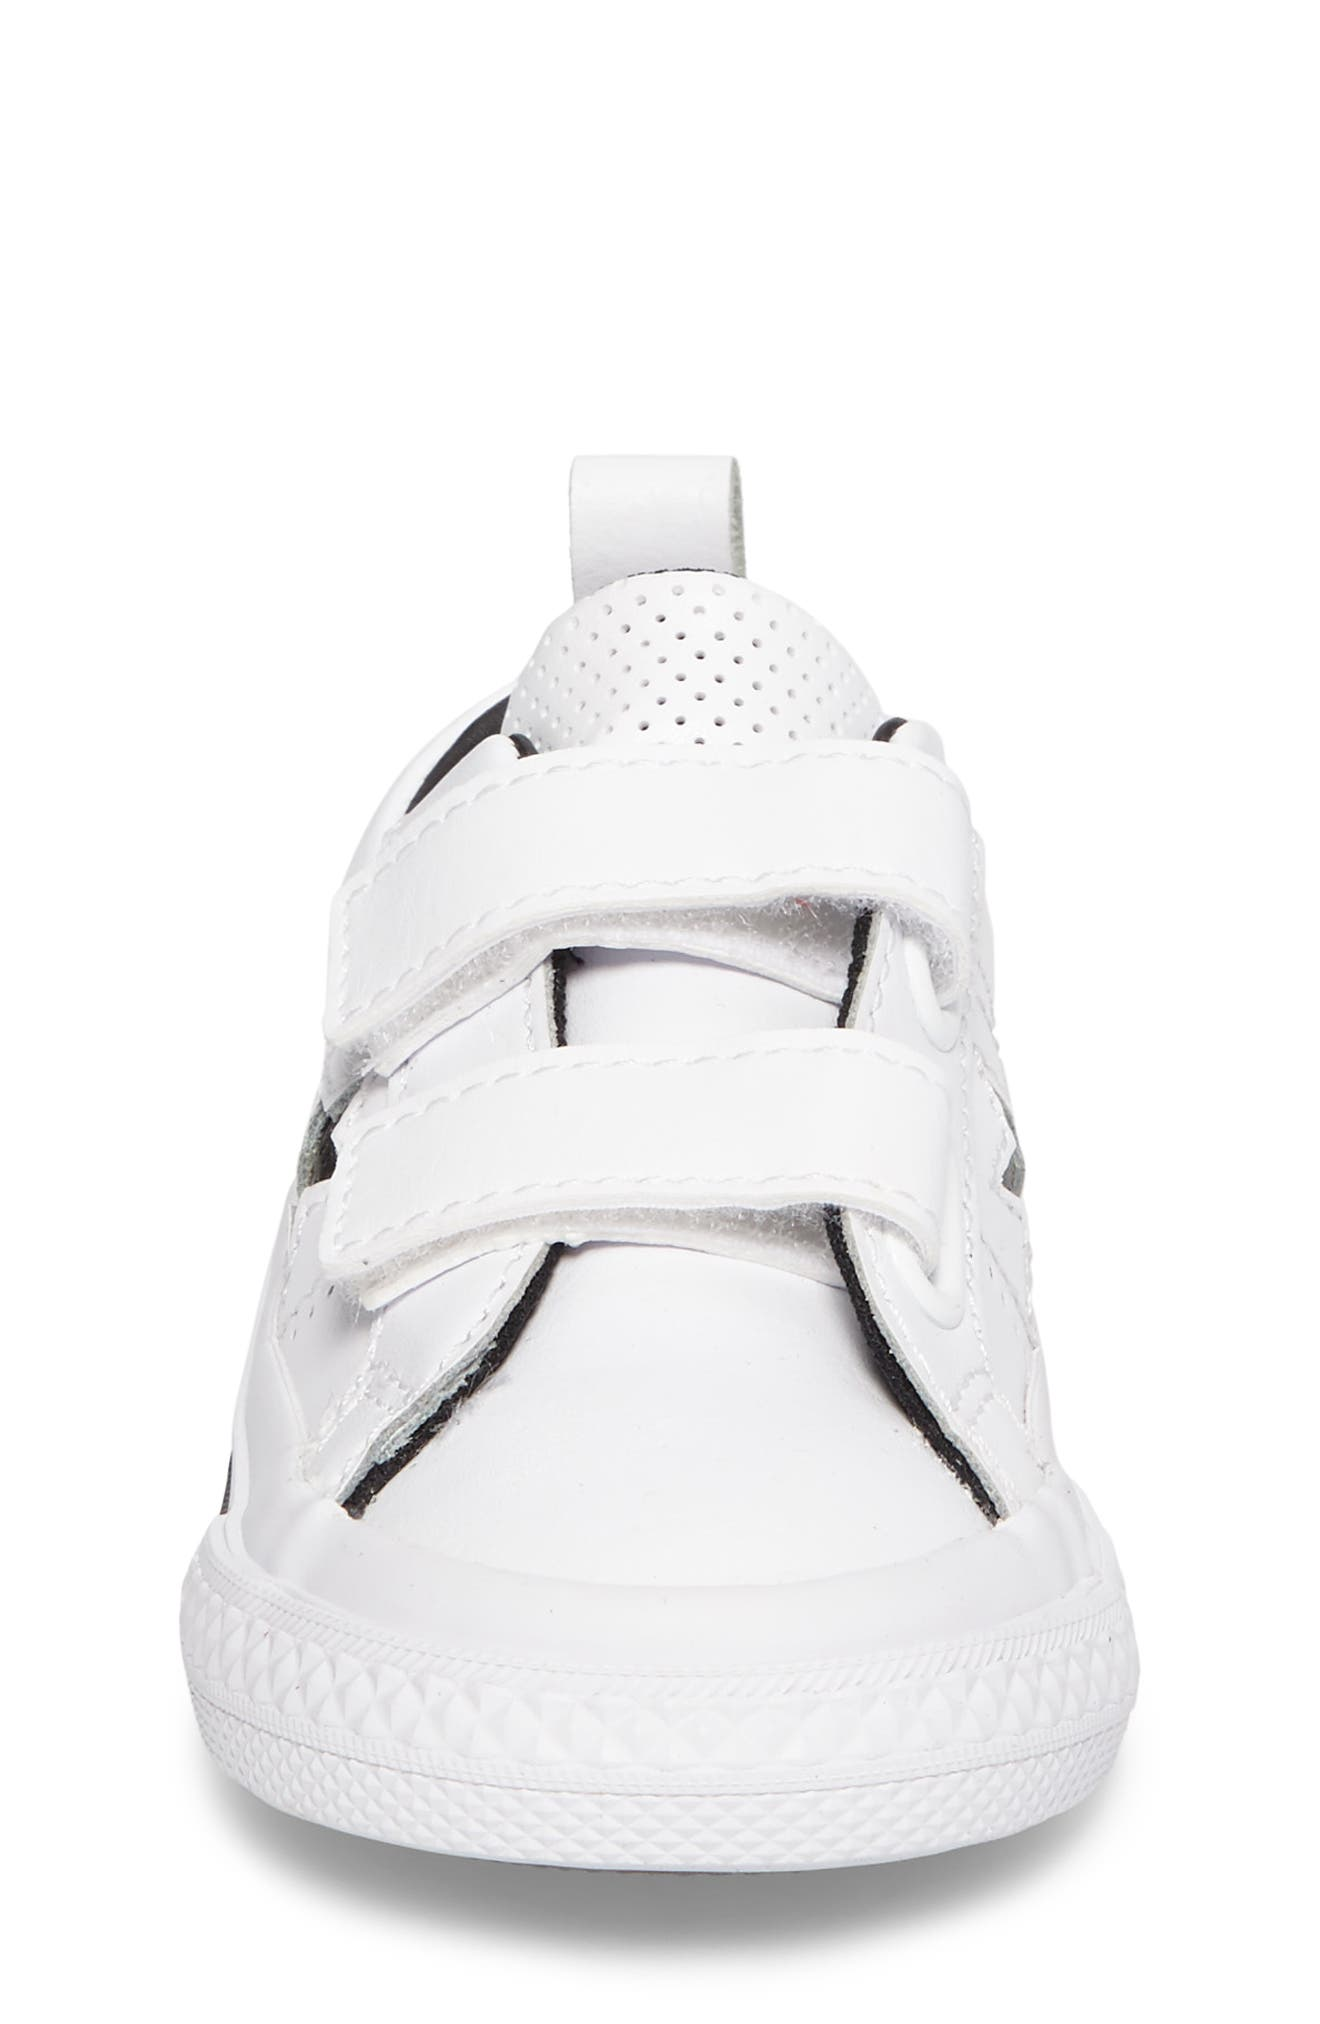 Chuck Taylor<sup>®</sup> All Star<sup>®</sup> One Star Sneaker,                             Alternate thumbnail 4, color,                             100